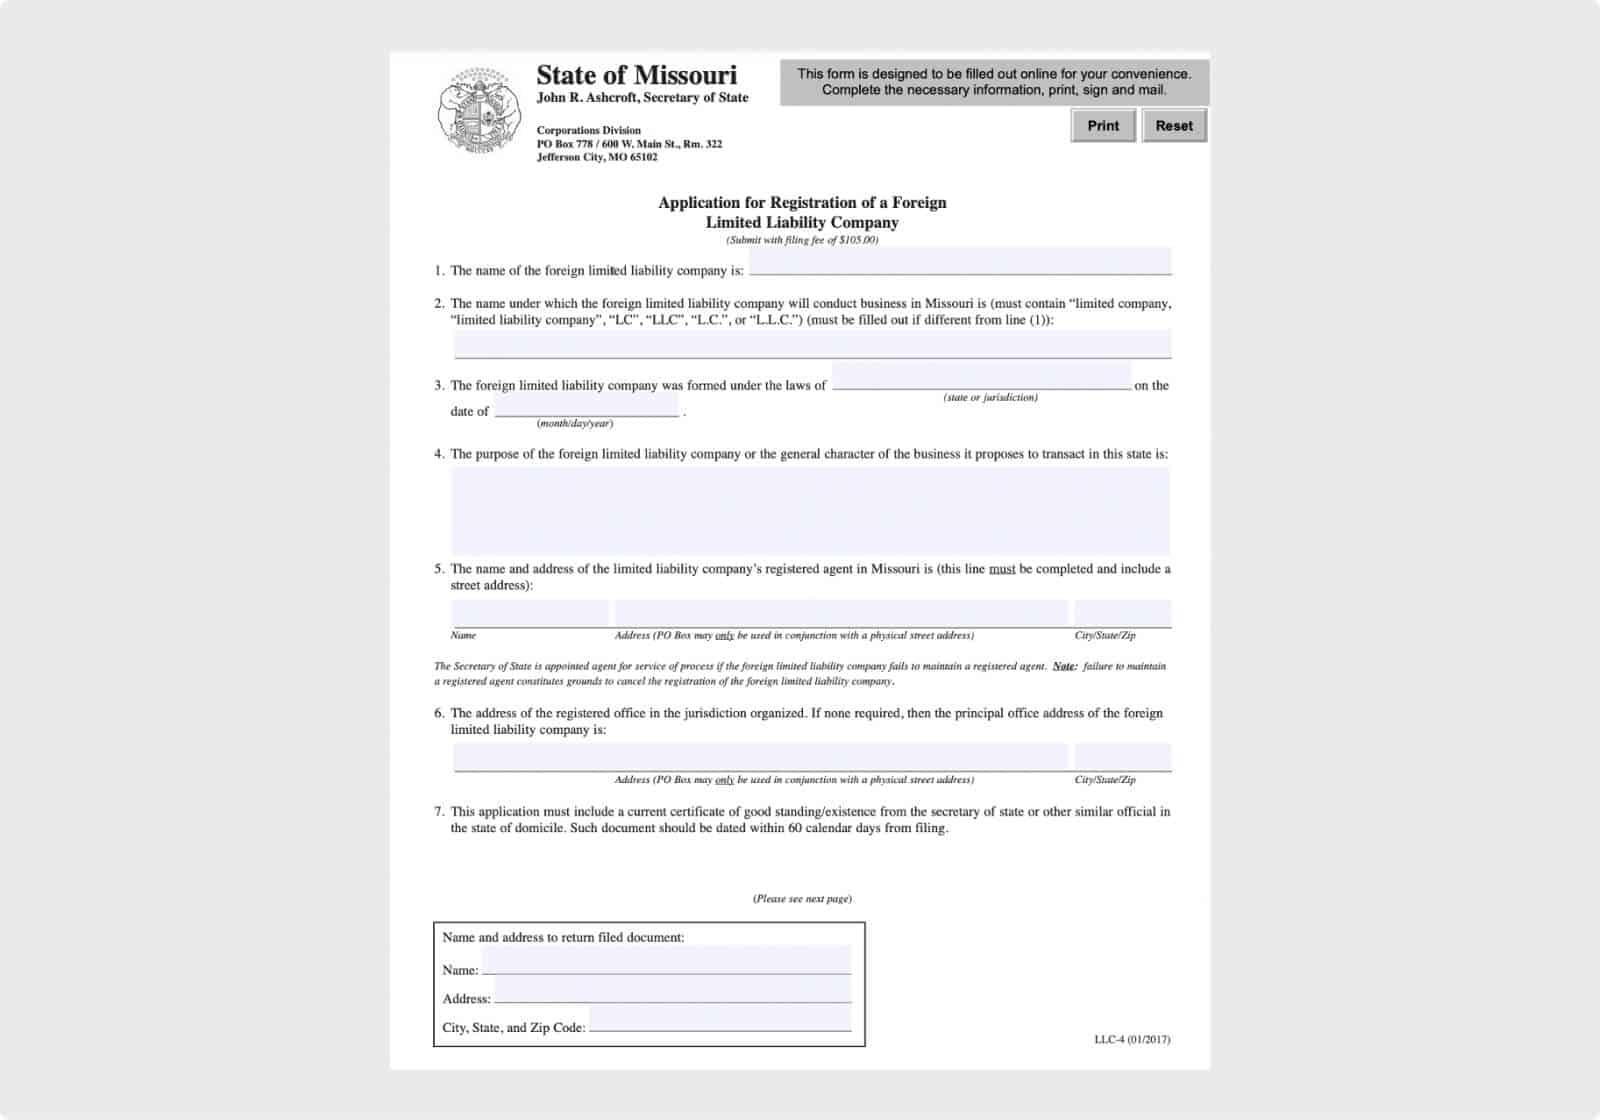 Application for Registration of a Foreign Limited Liability Company (page 1)